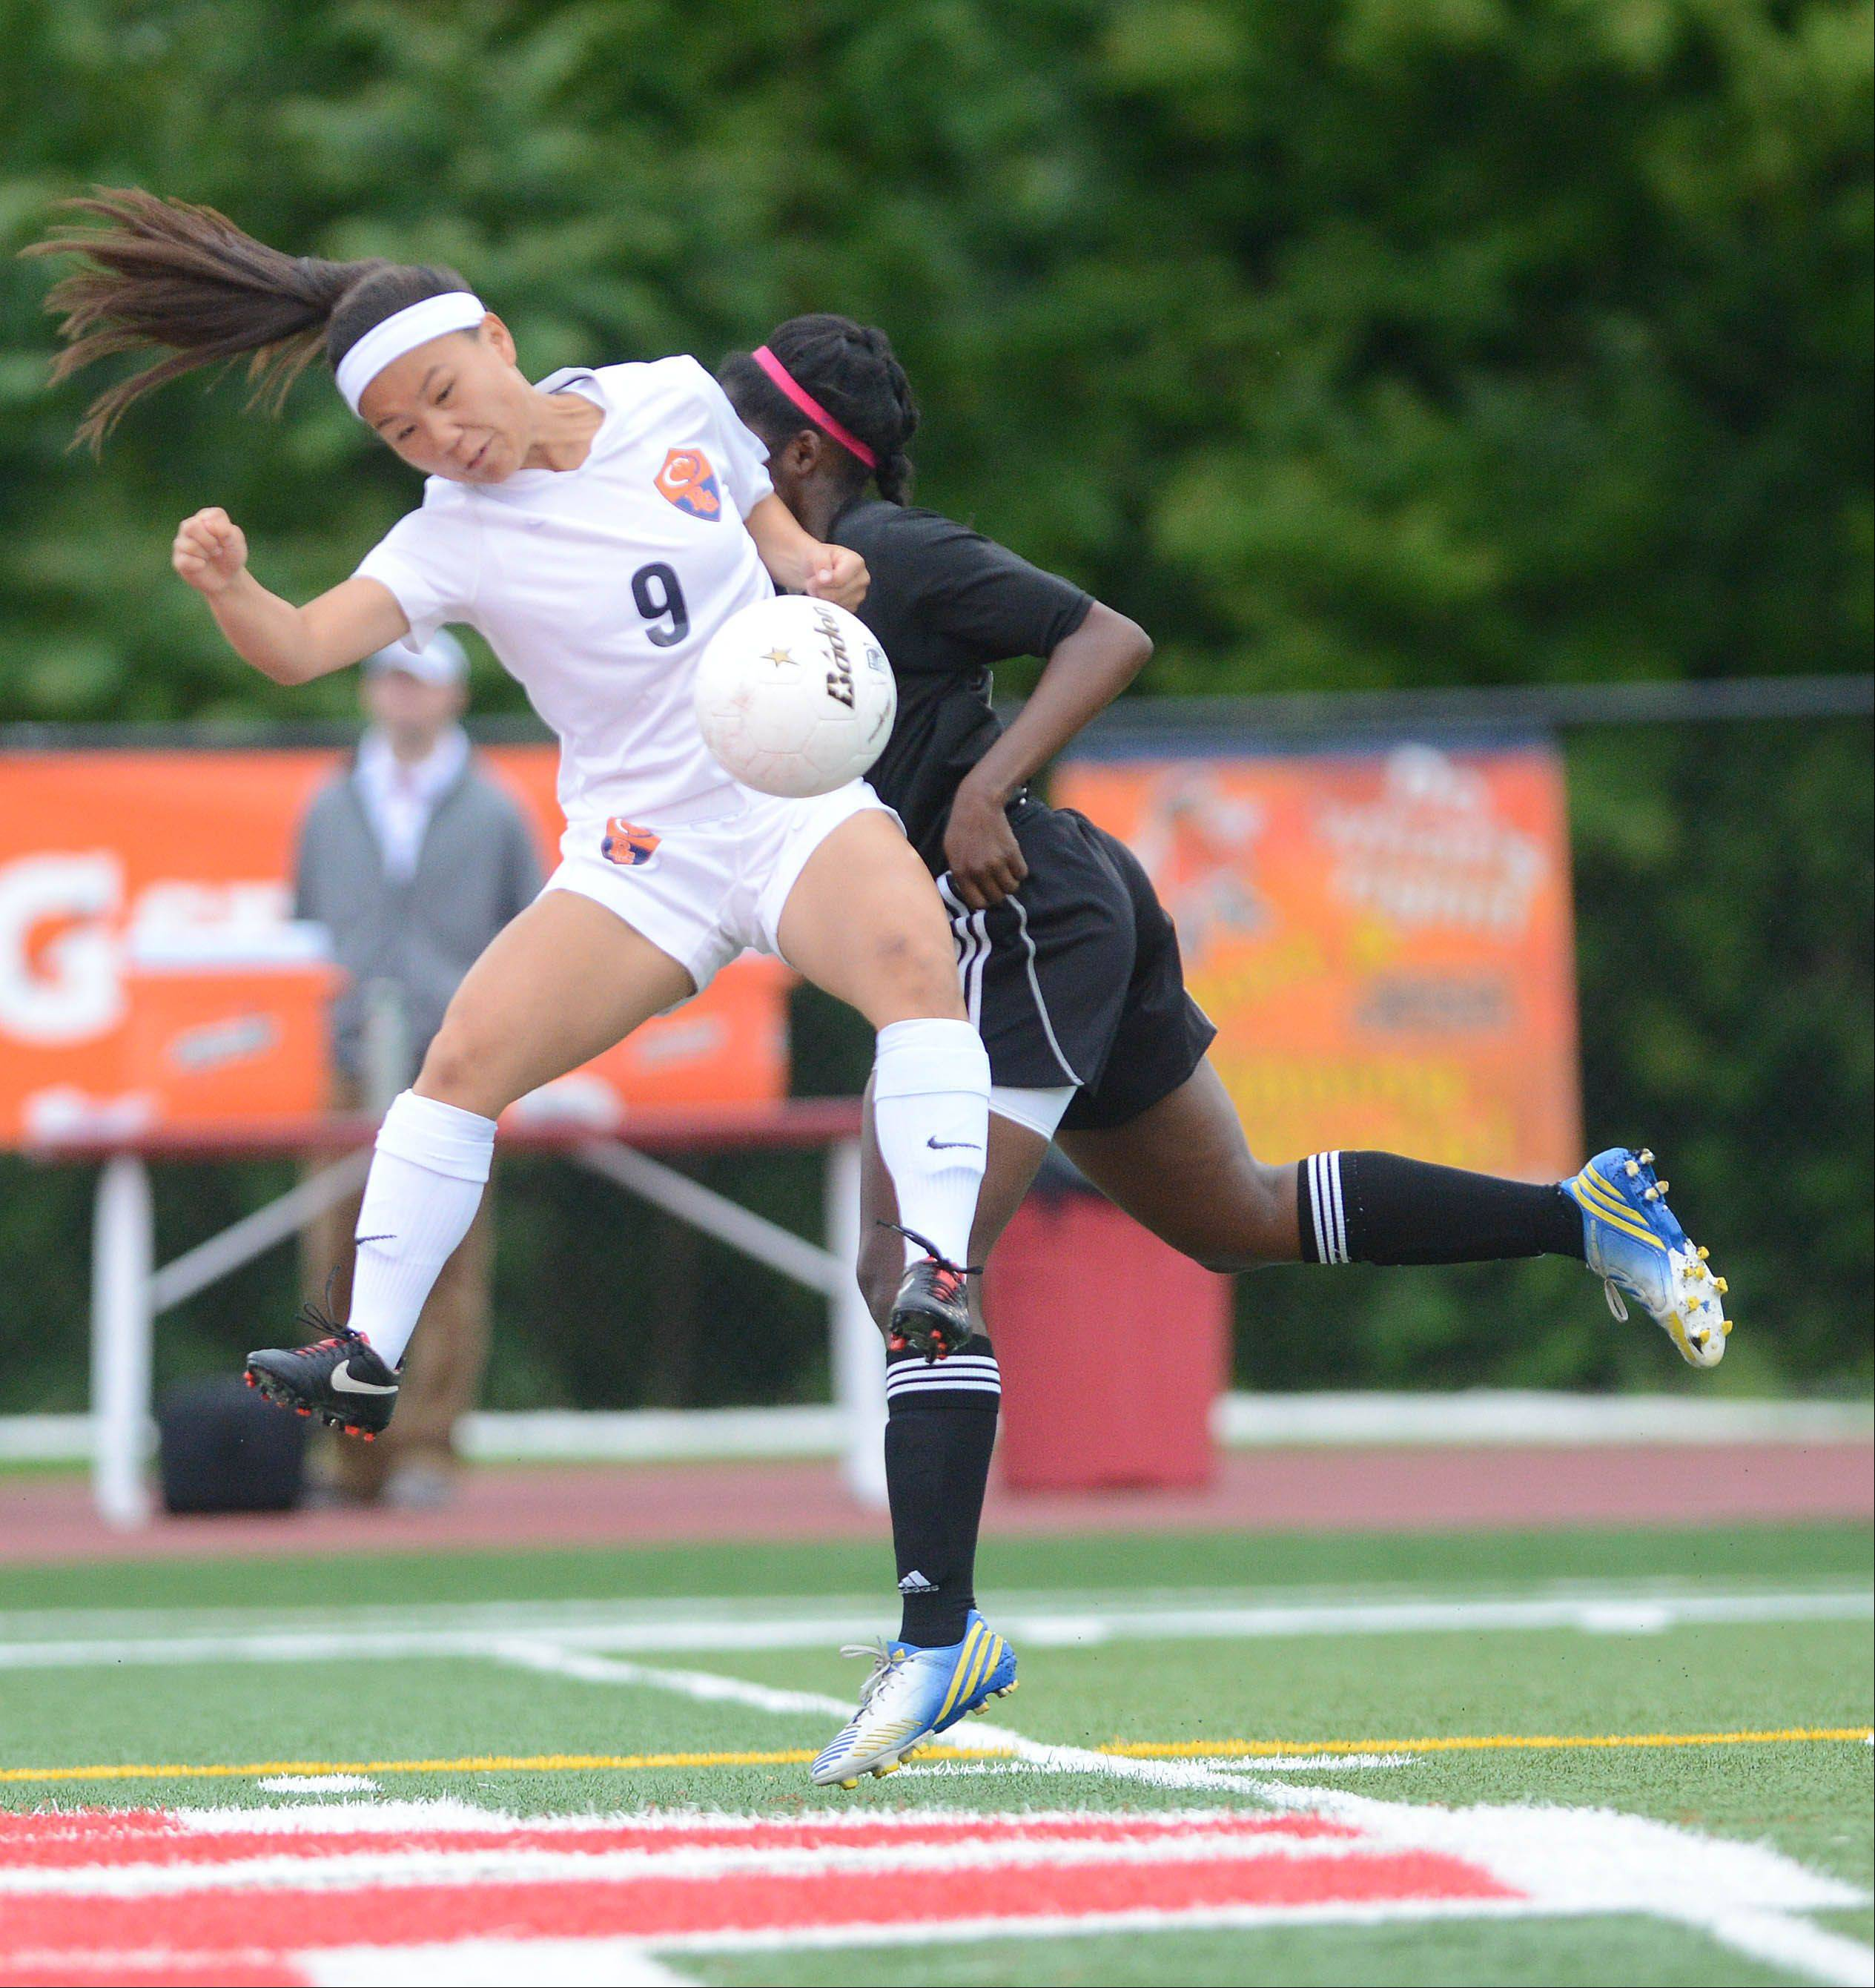 Skylar Groth of Buffalo Grove gets some air during the Class 3A third-place matchup against Barrington on Saturday in Naperville.